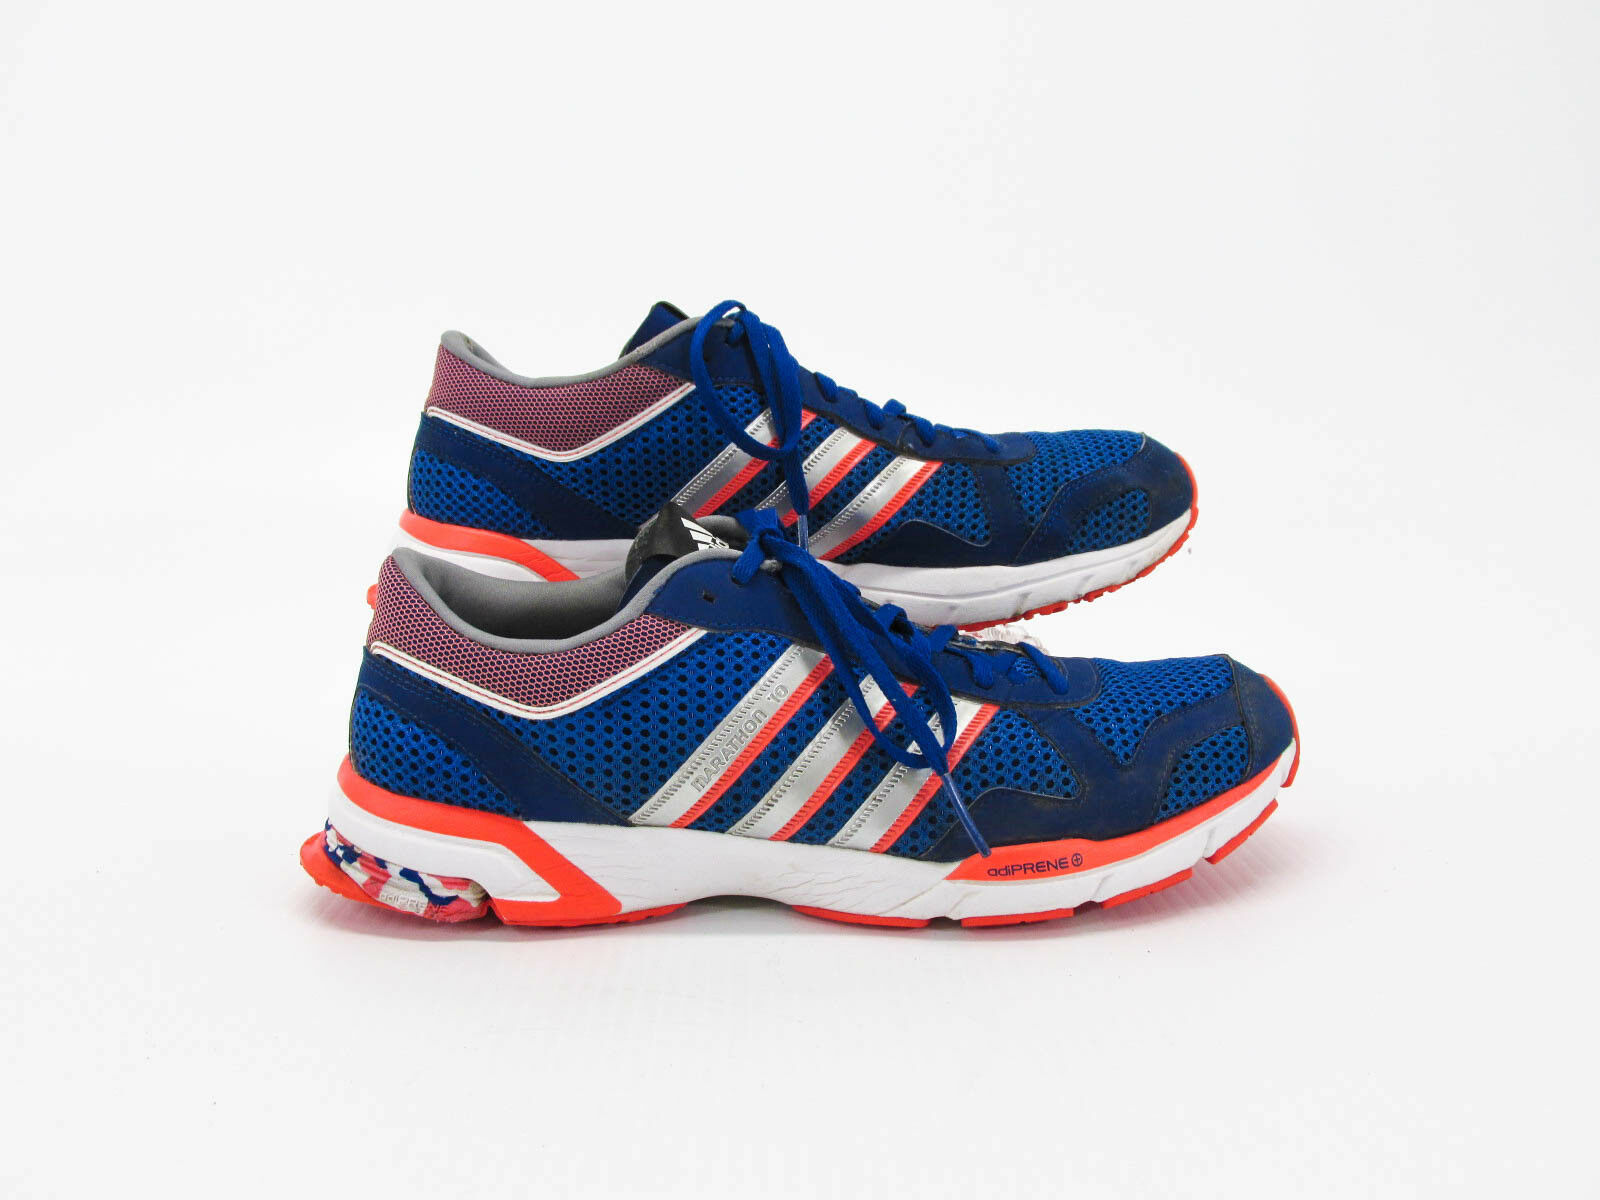 Adidas Marathon 10 Men bluee Athetic Running shoes Size 11M Pre Owned JJ